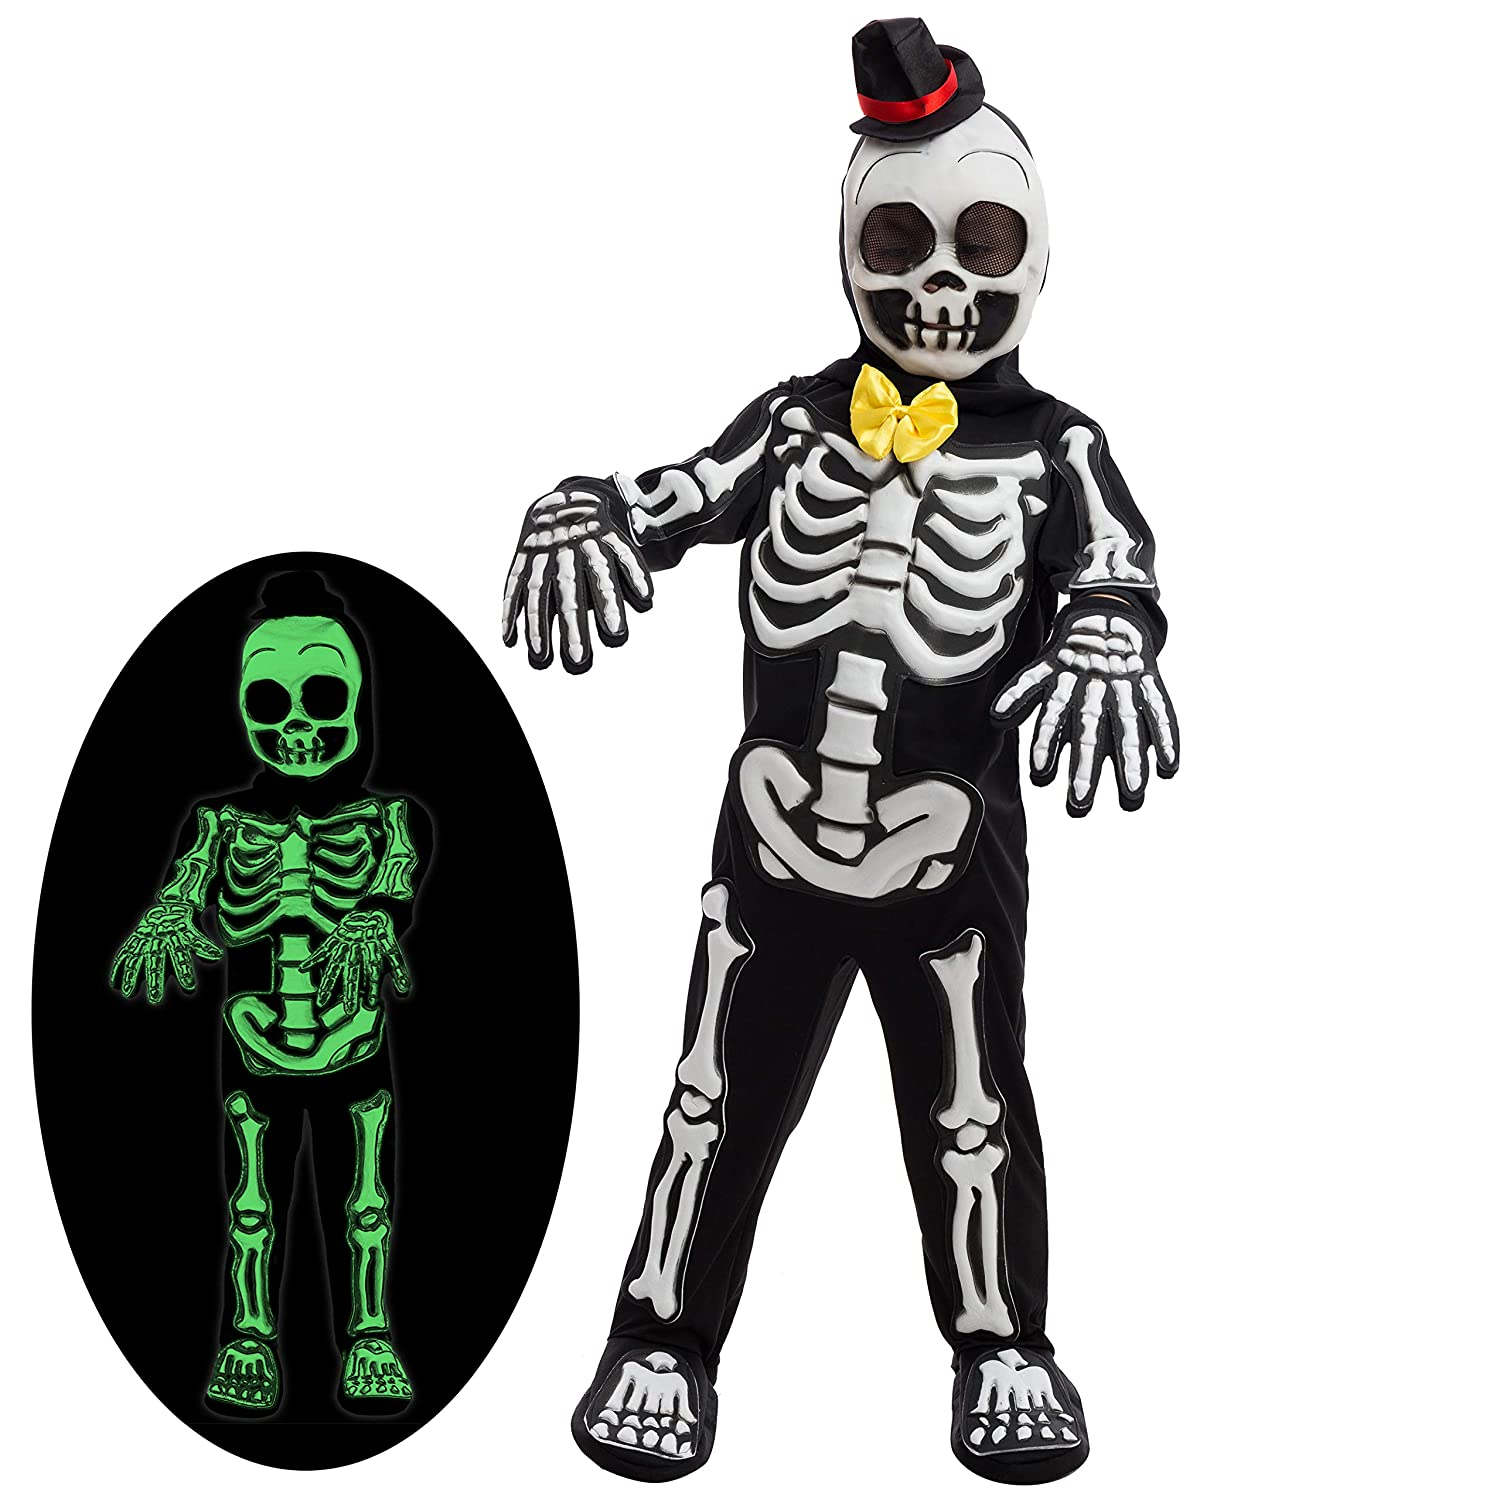 Spooky Skelebones Deluxe Skeleton Kids Toddler Costume Set Glow in The Dark Effect on Skull Halloween Dress Up Party Joyin Inc